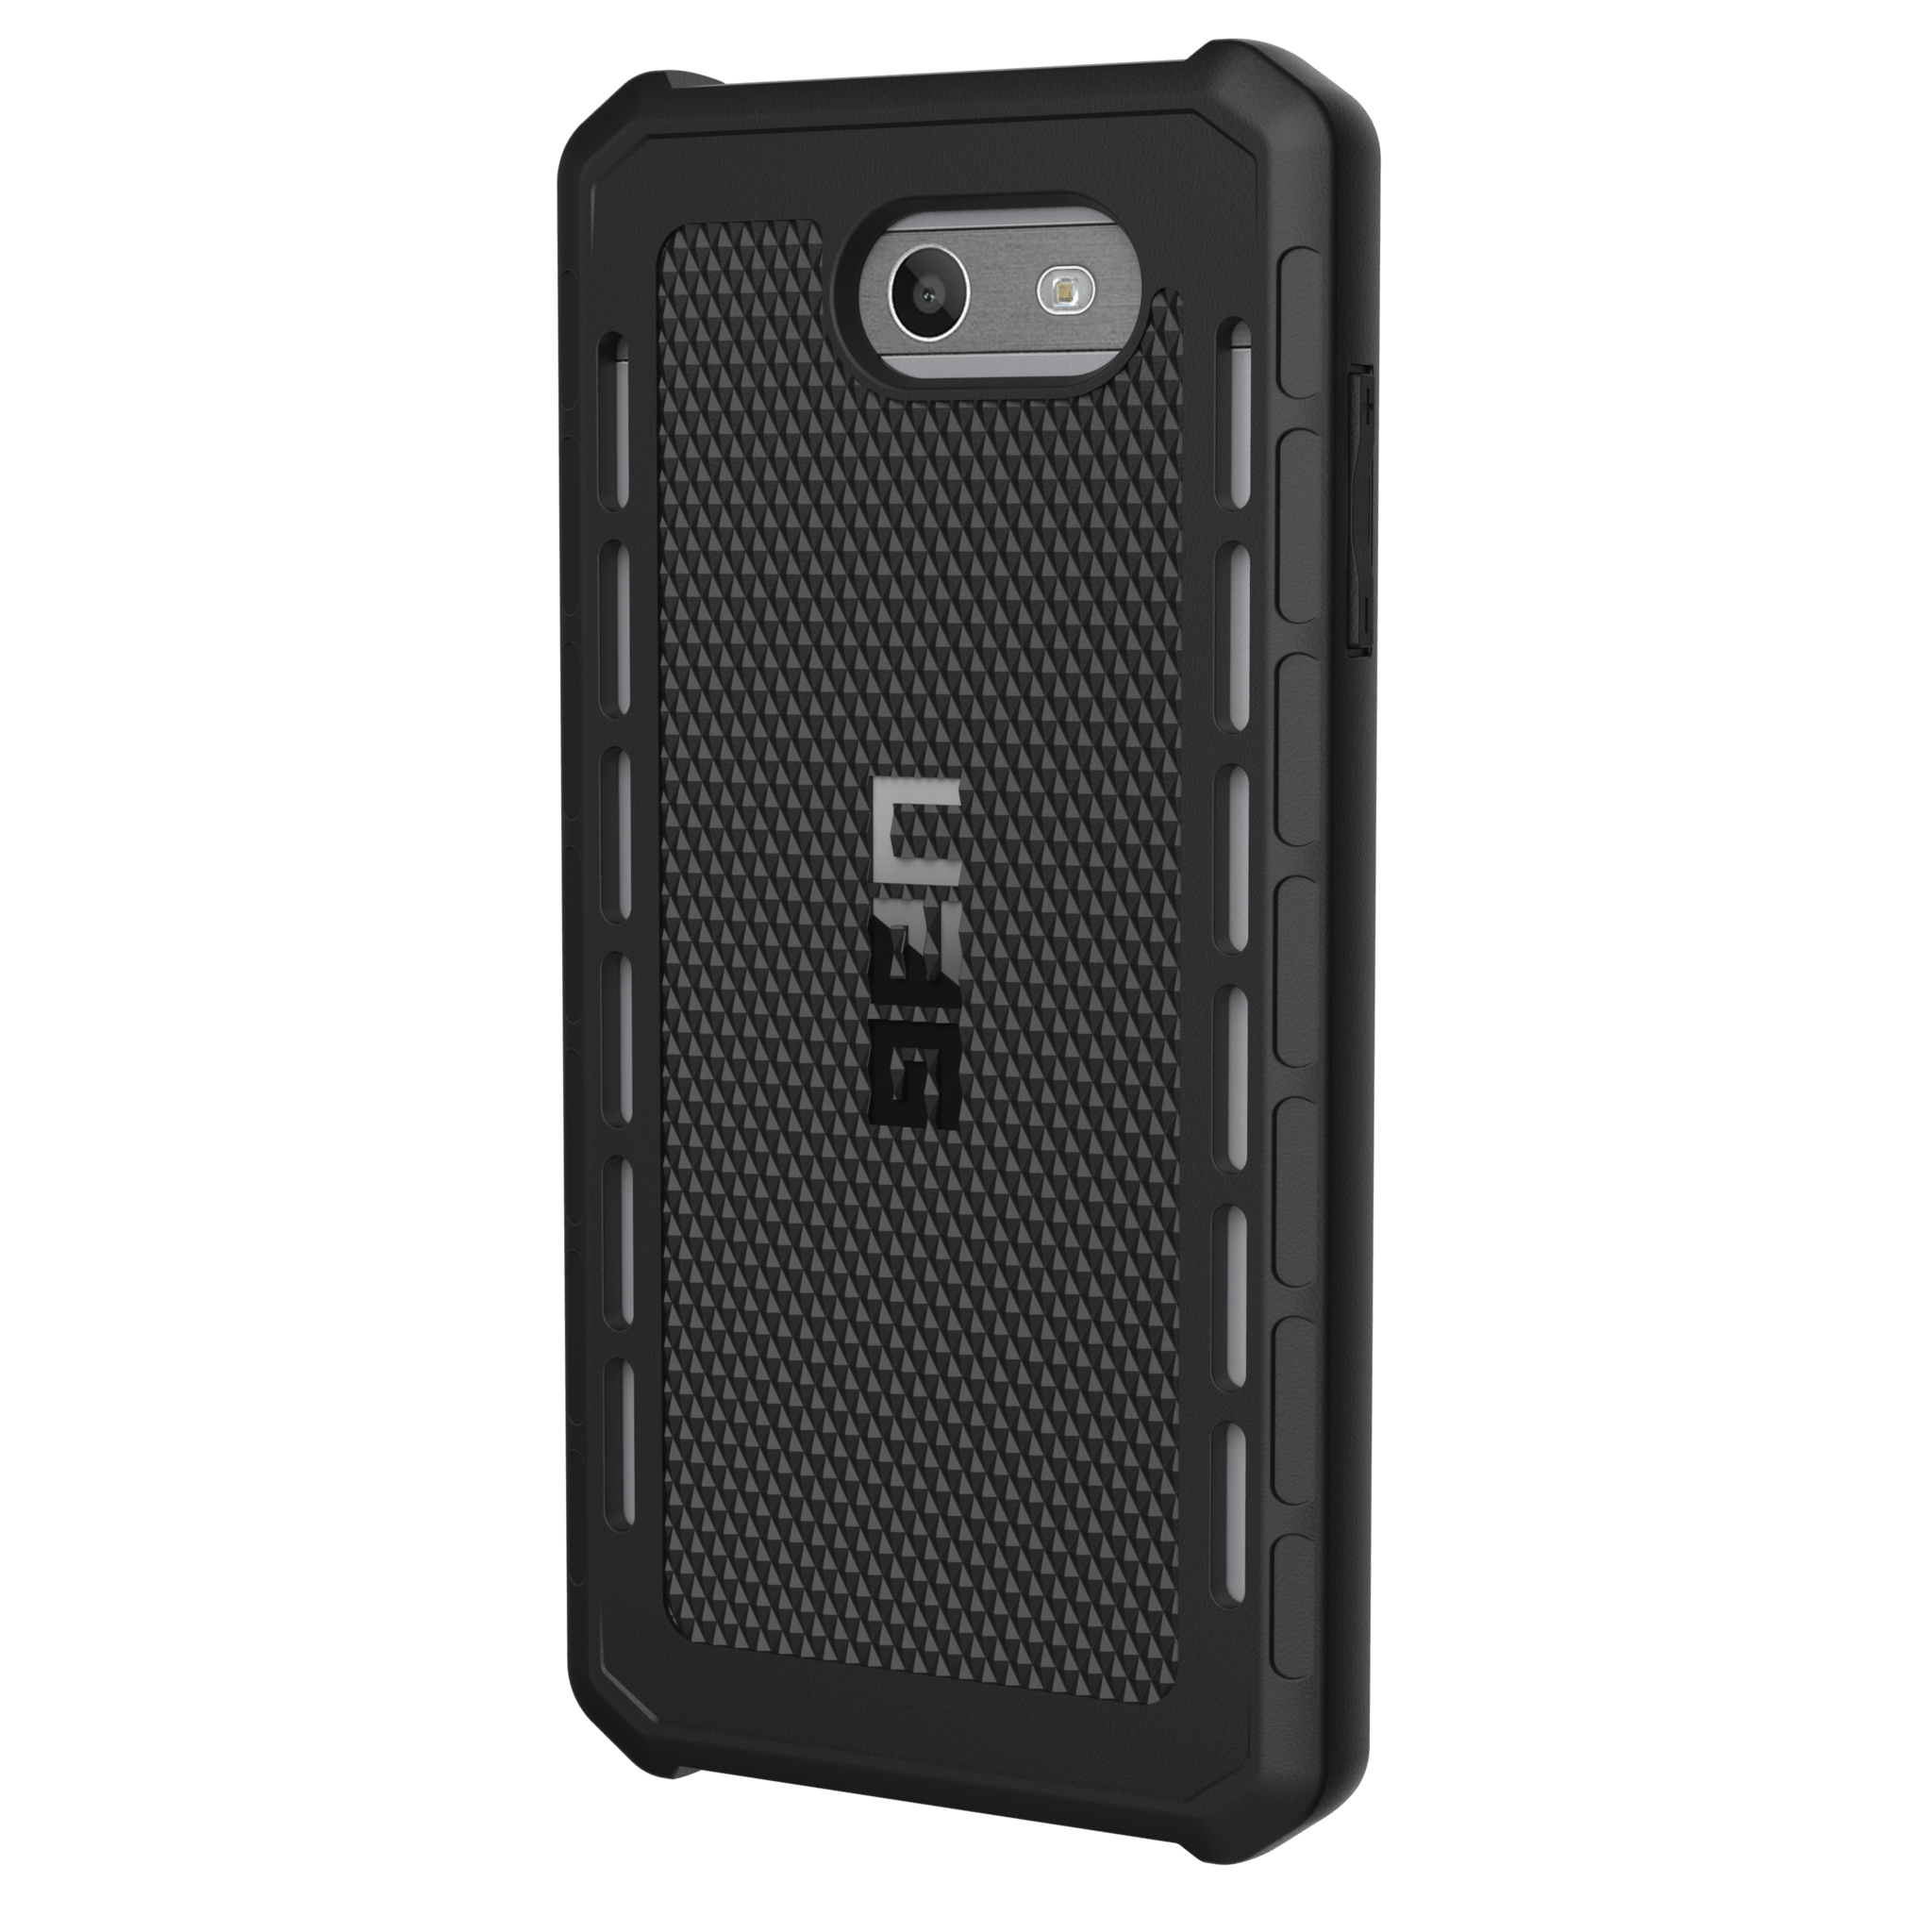 half off 72f0b 9c1f4 Outback Series Samsung Galaxy J7 (2017) Case